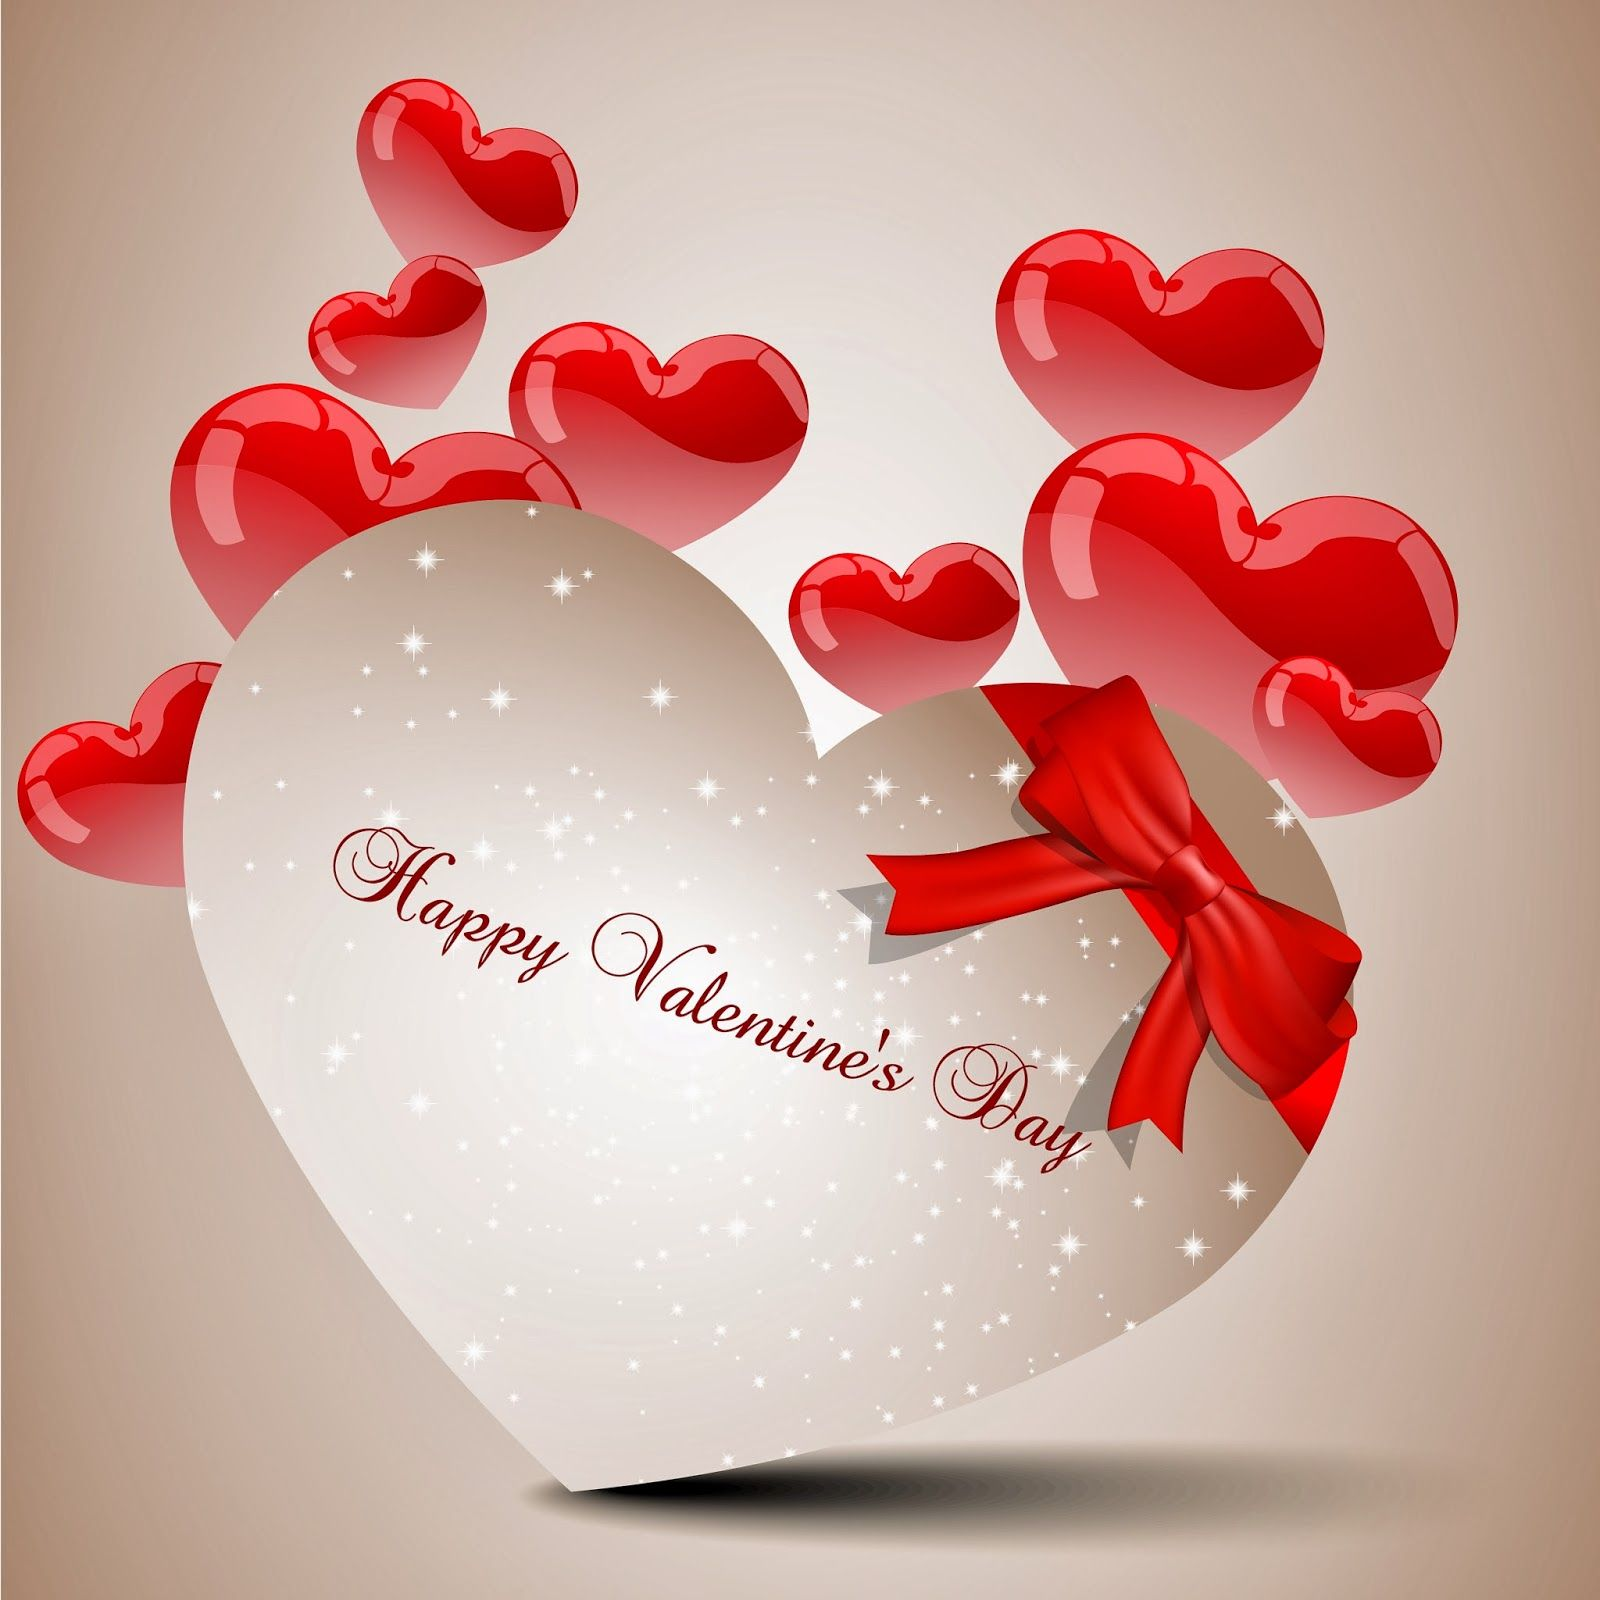 Happy Valentines Day  E2 9c Bf E2 99 A5